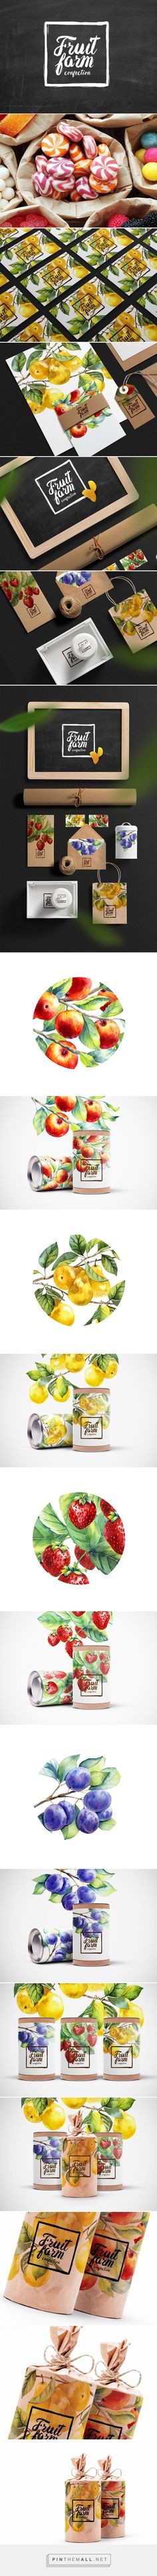 packaging / Fruit Farm Confection / food